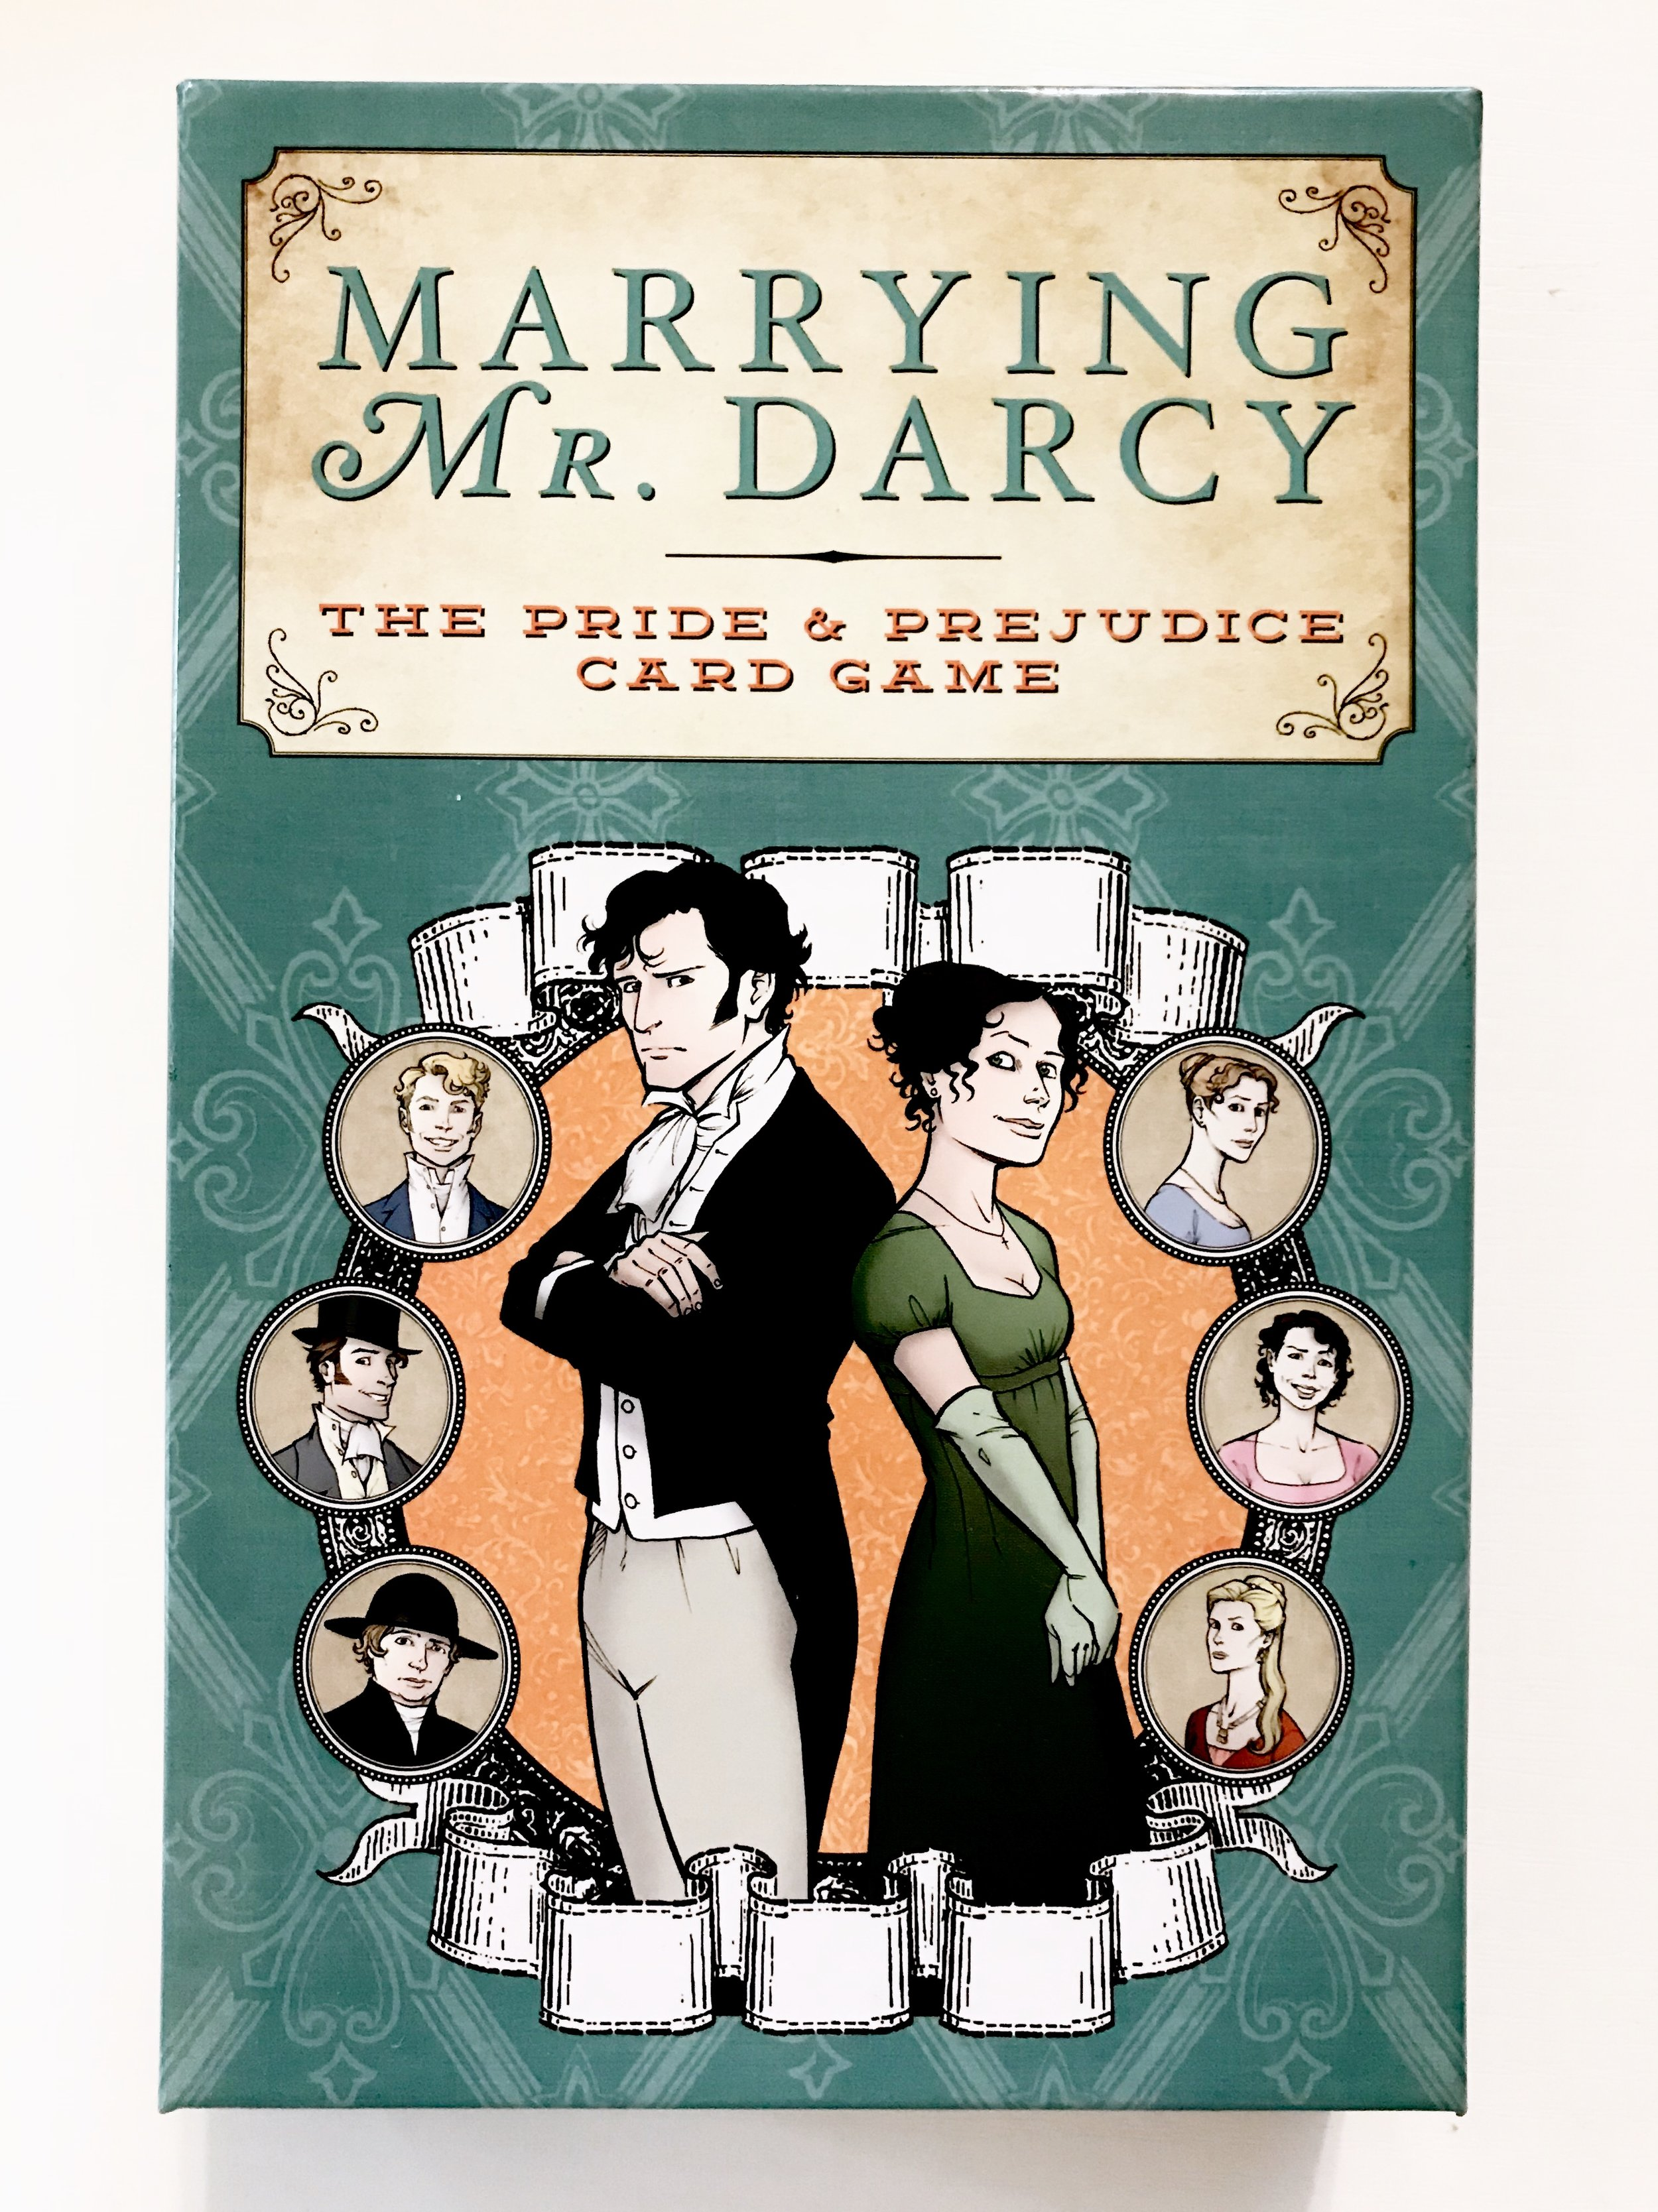 Marrying Mr. Darcy is a great gift idea for the  Pride and Prejudice  or literature fan in your life.